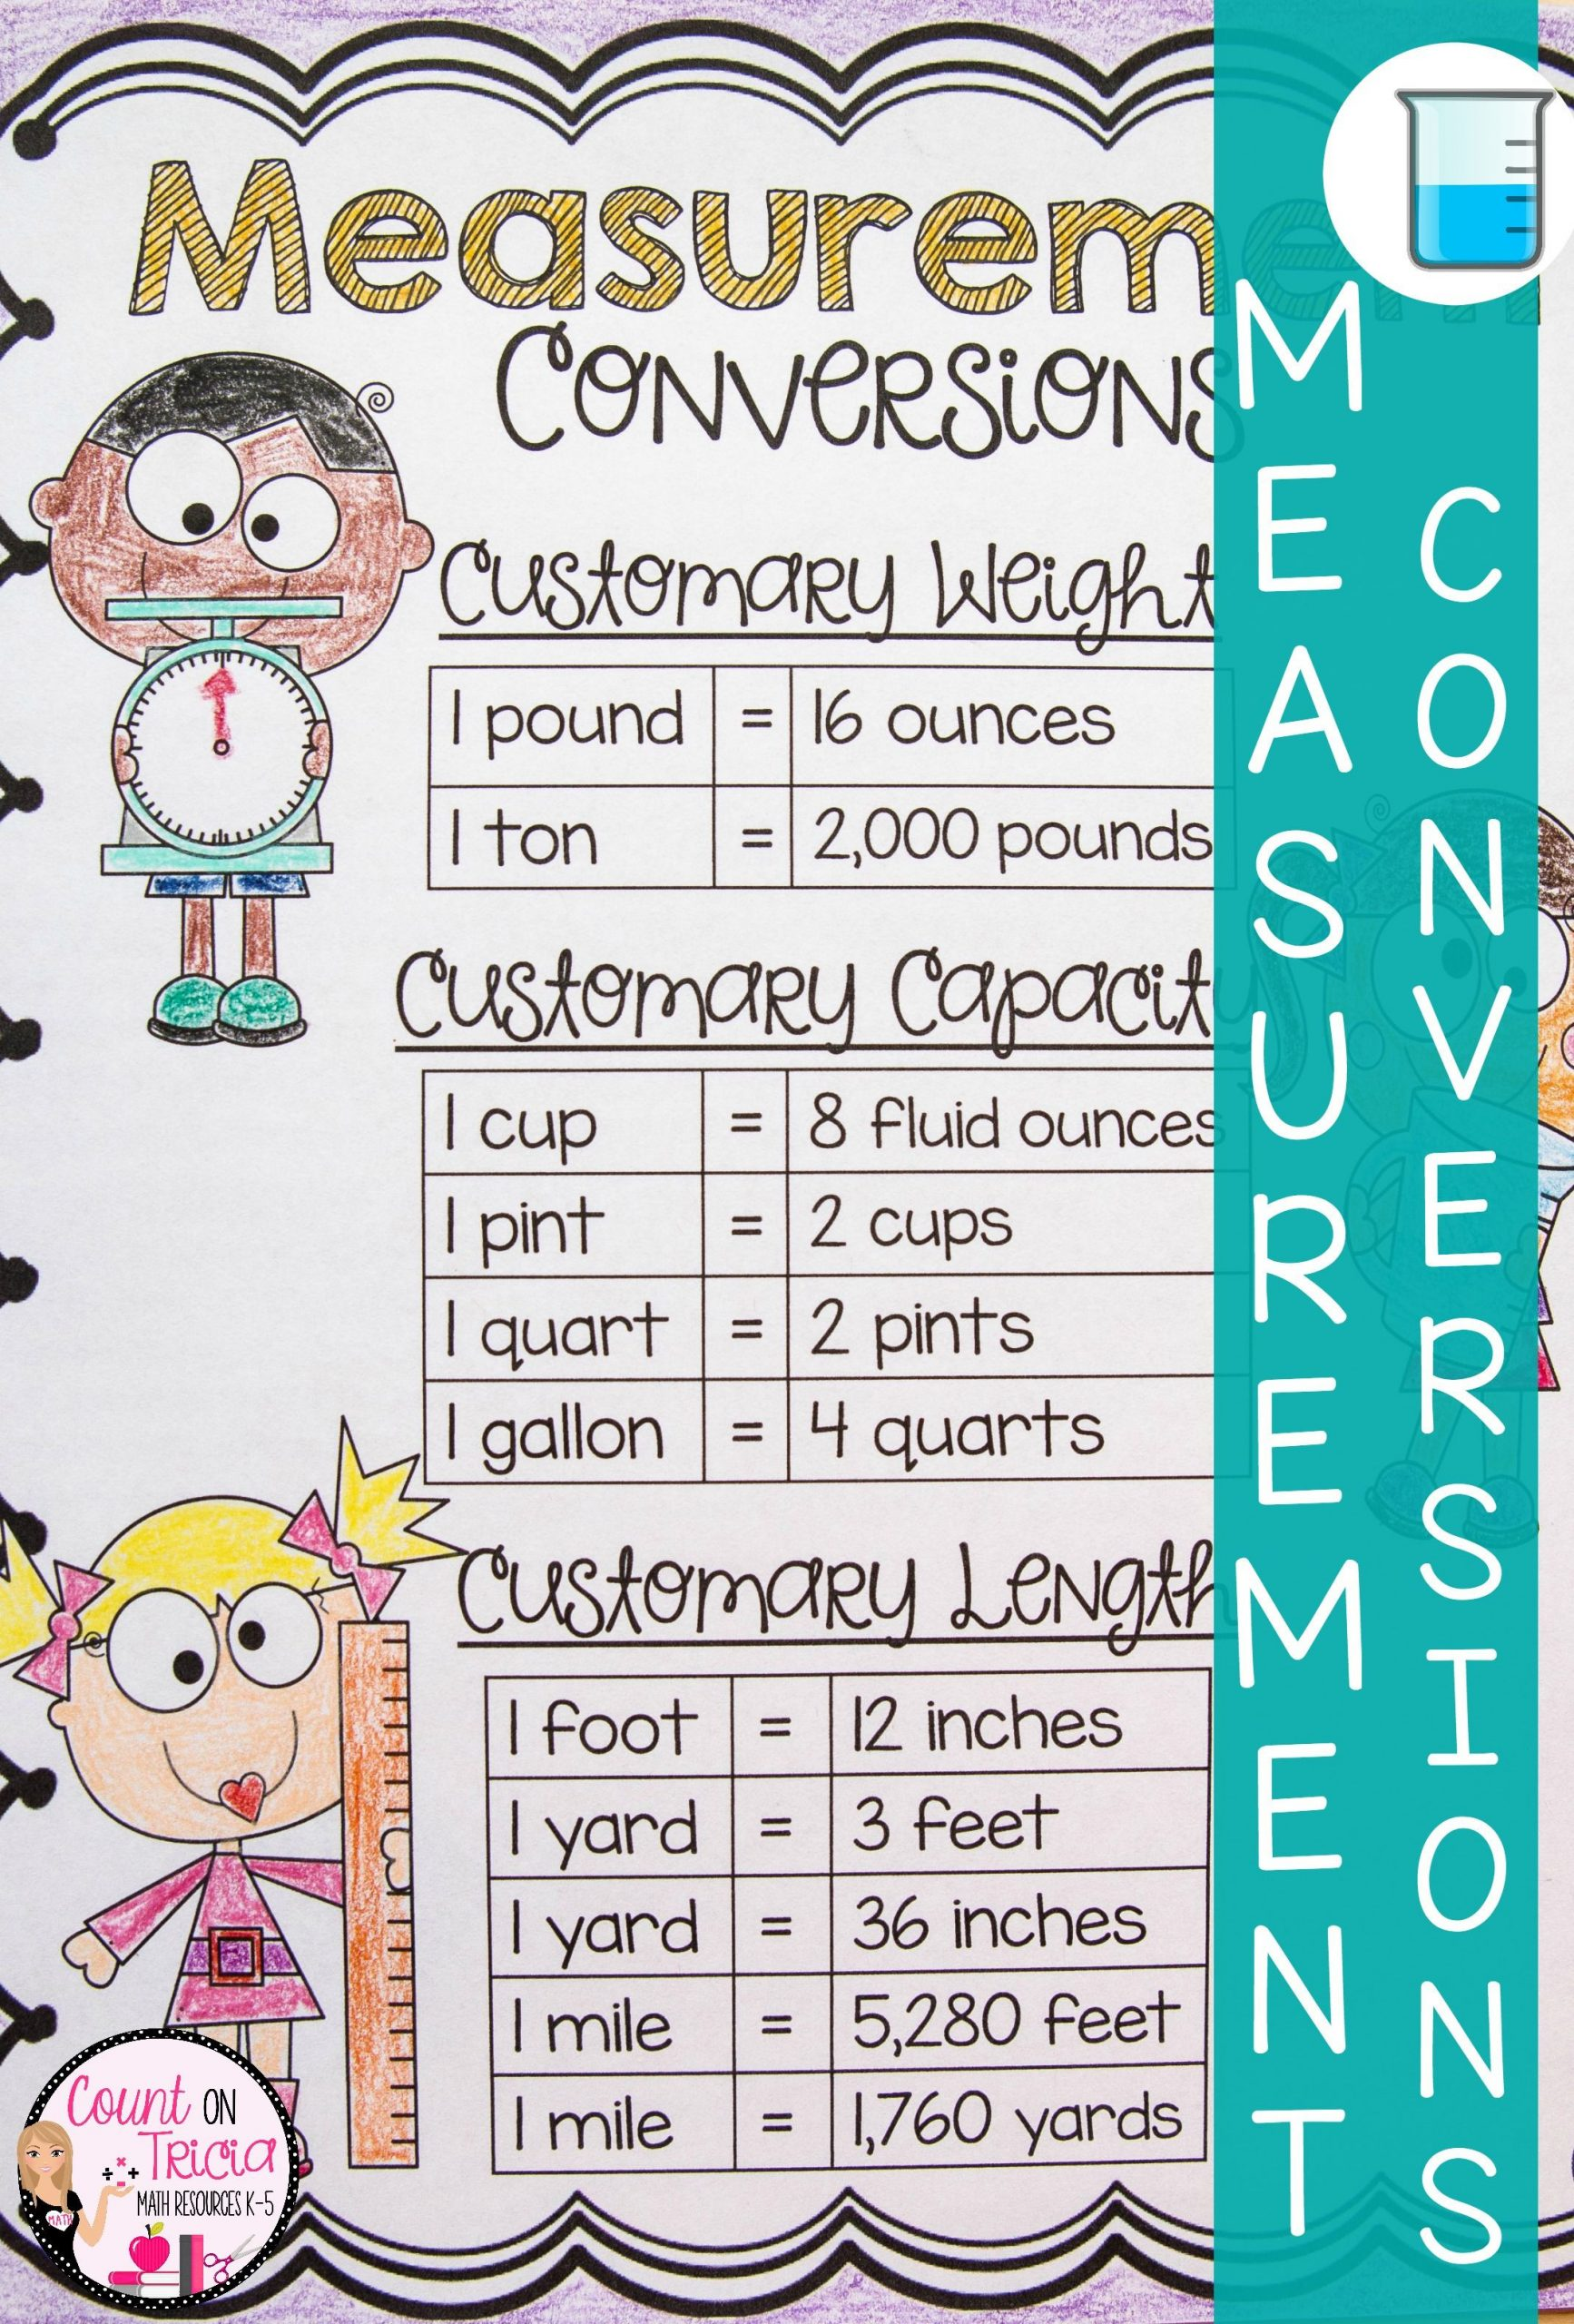 Customary Capacity Conversion Worksheets Measurement Conversion Worksheet